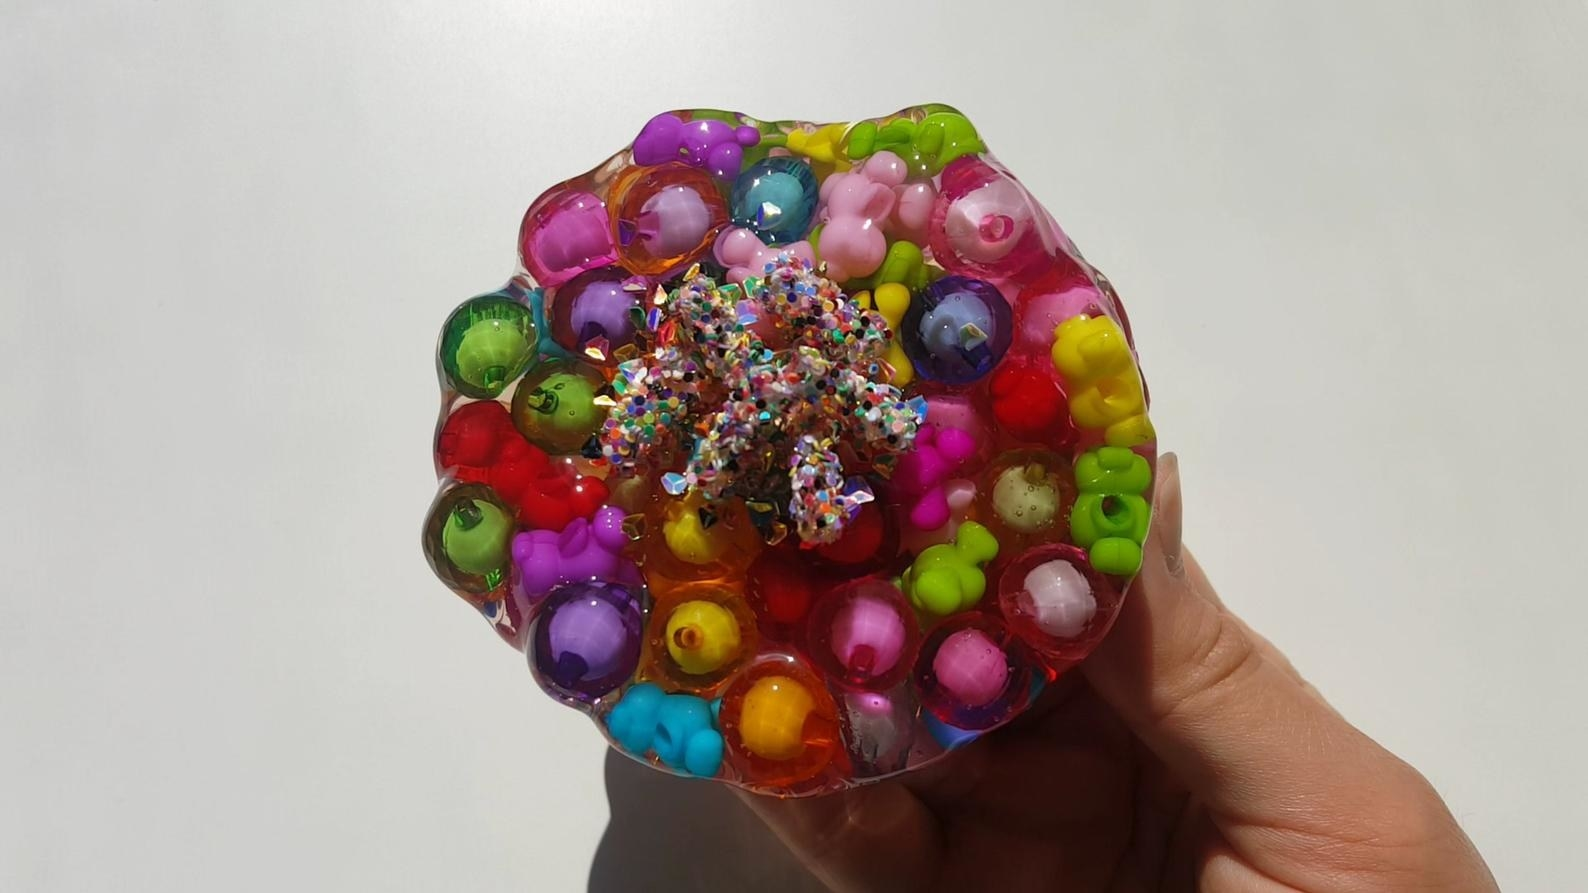 The candy crystal slime